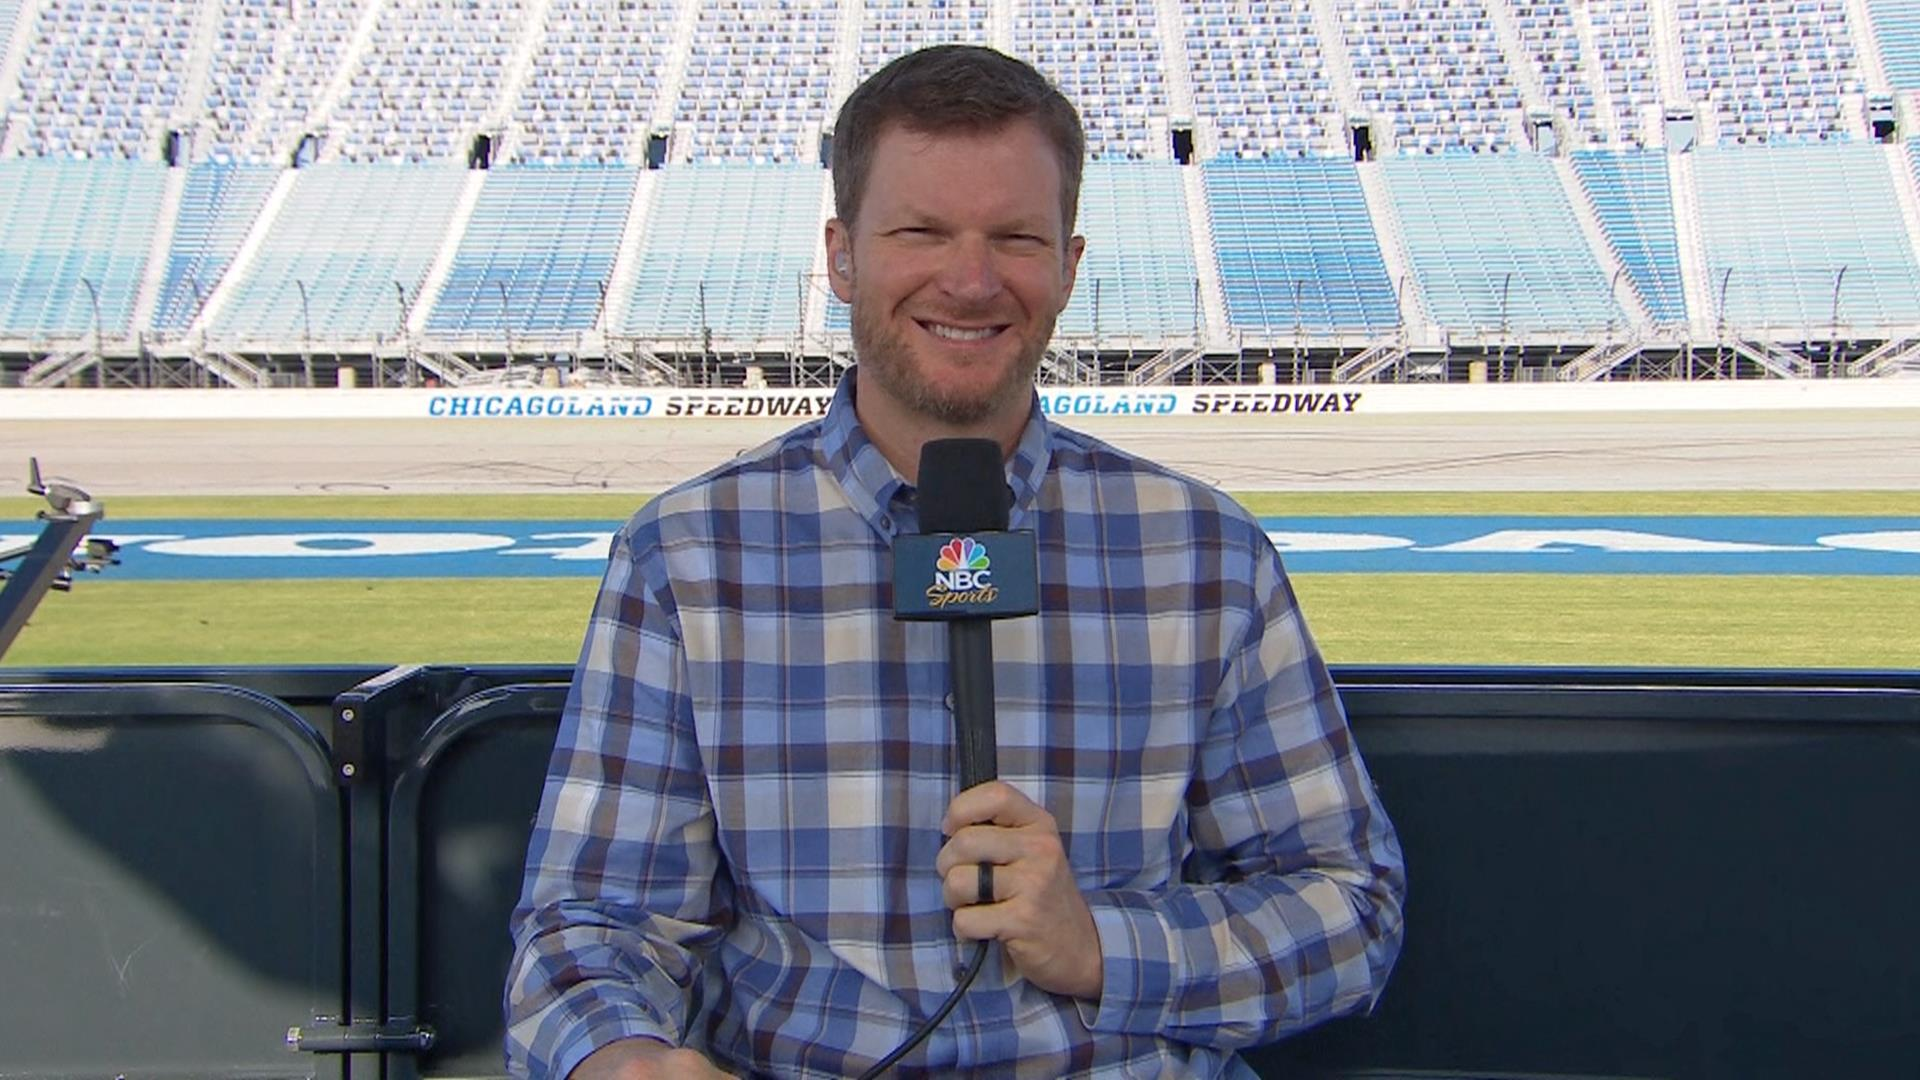 Dale Earnhardt Jr. gears up for debut as NBC's NASCAR analyst